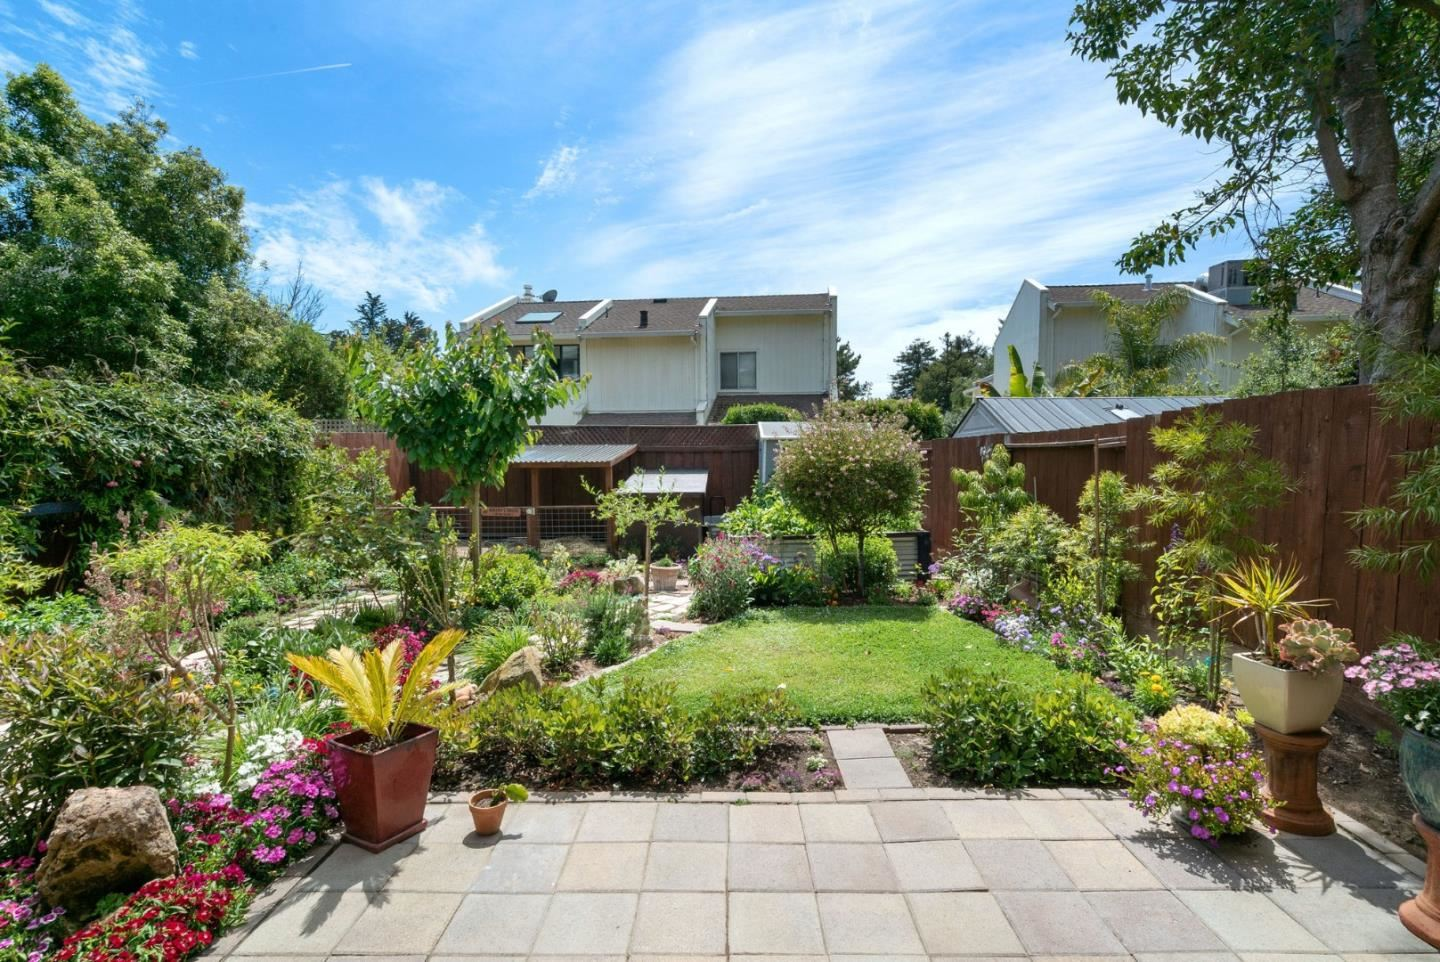 Photo for 2004 Seascape BLVD, APTOS, CA 95003 (MLS # ML81792742)